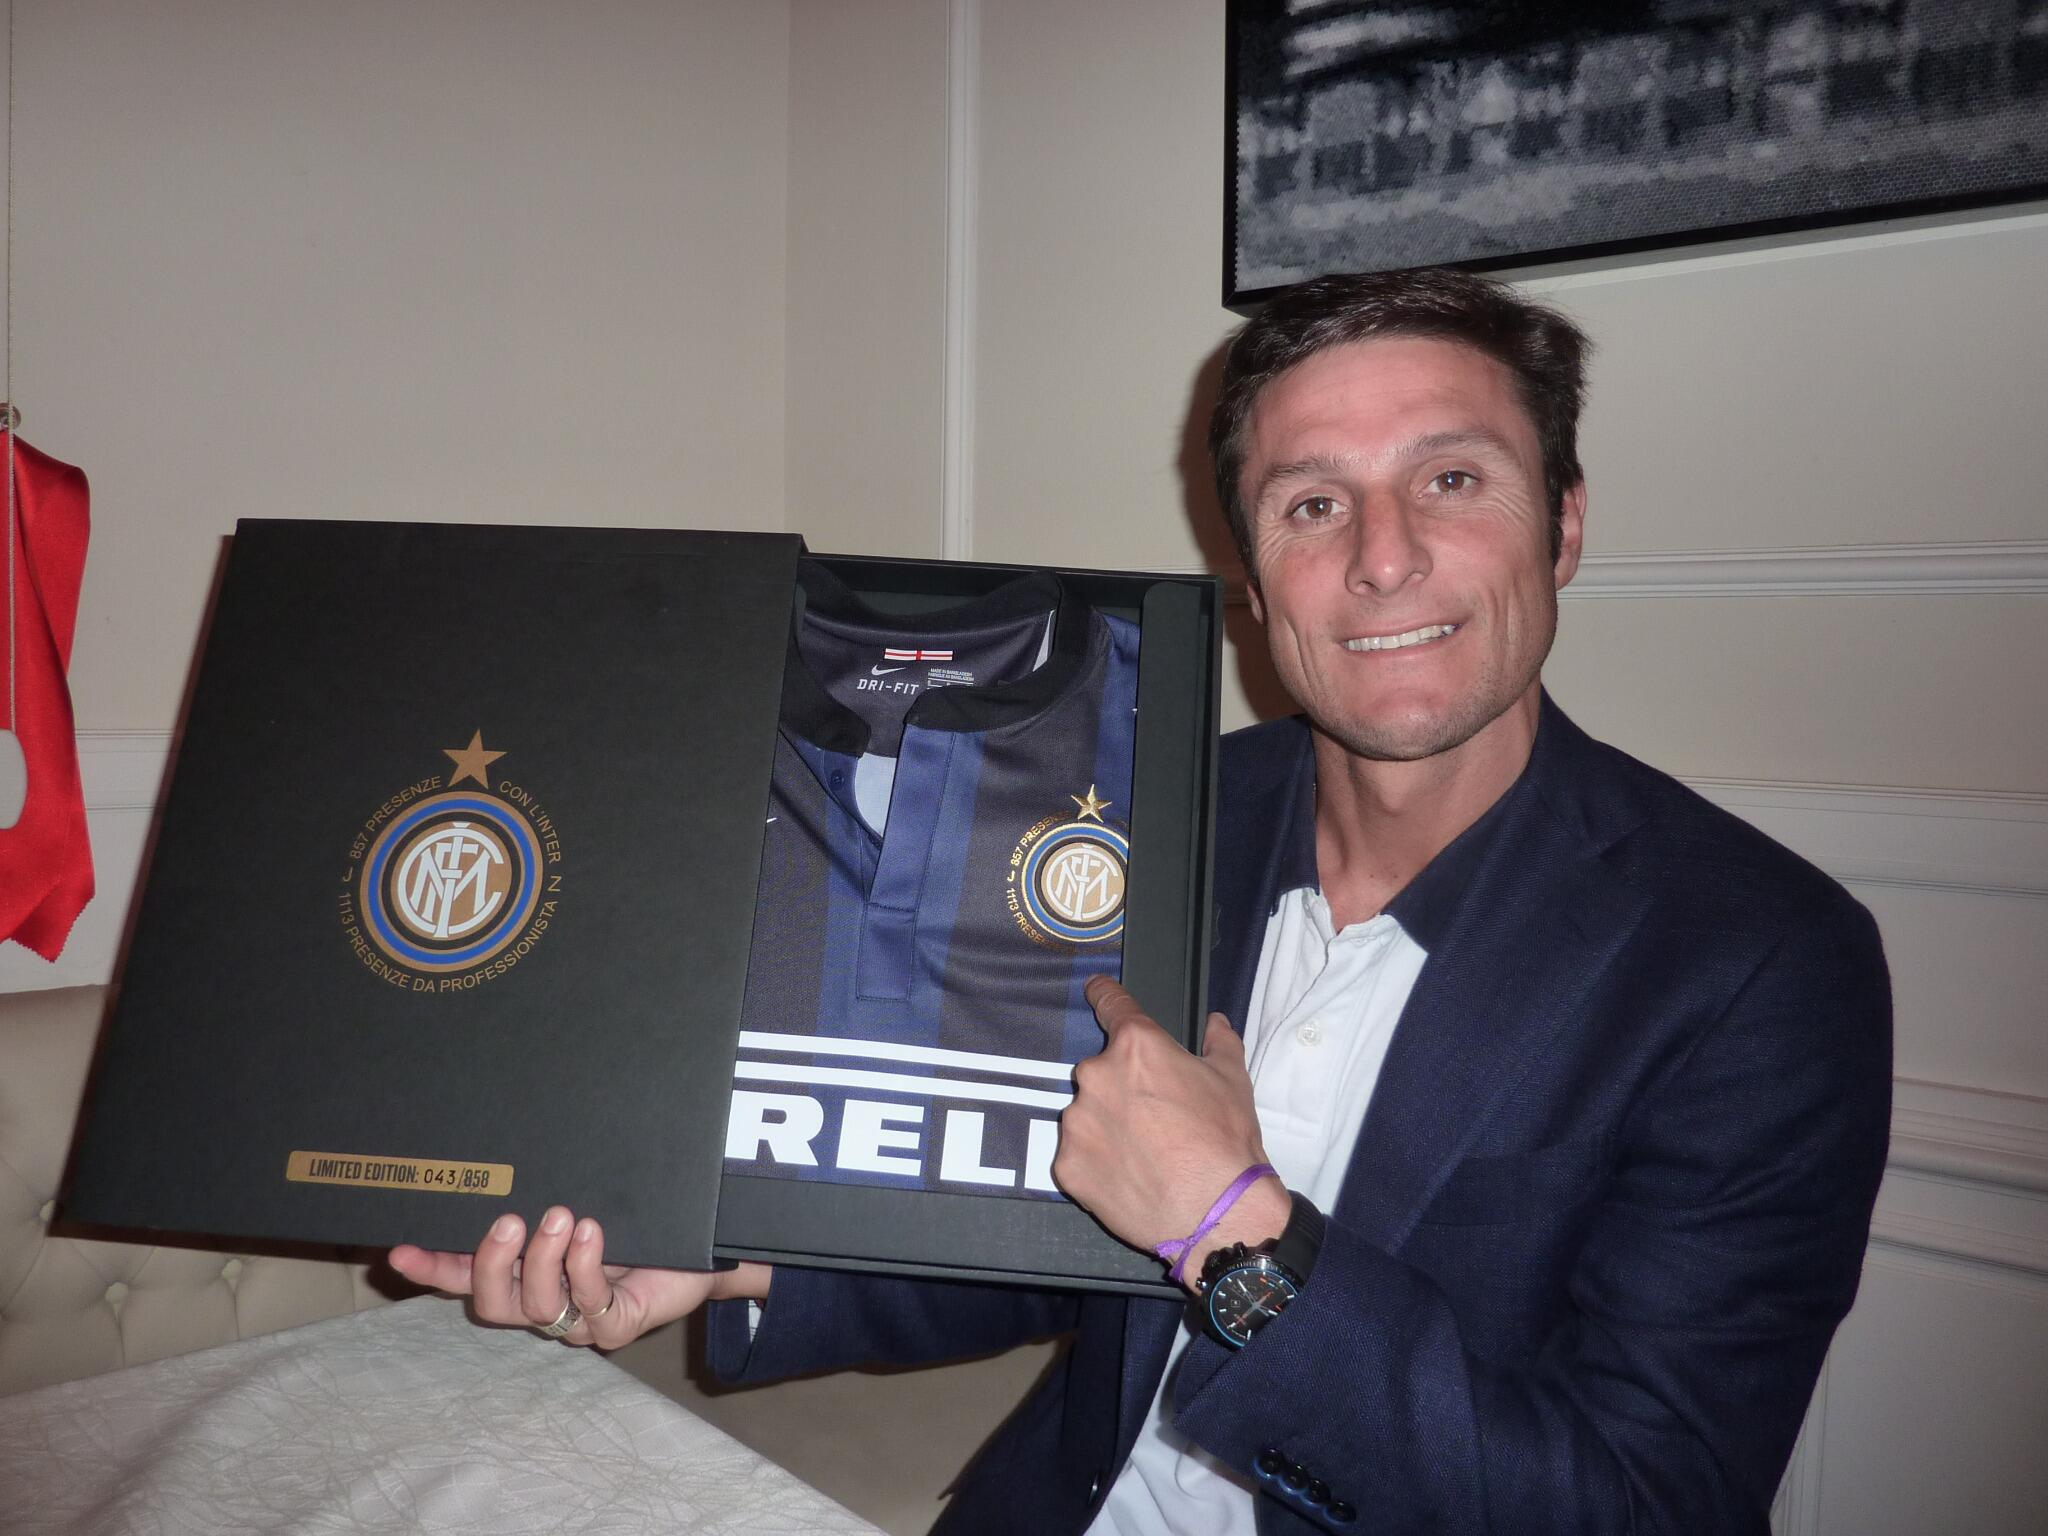 RT @Inter: JZ: Haha! Sorry about that.I'm looking forward to it as well.See this commemorative shirt? It's for you #GiggsZanetti http://t.co/l5hbXiJe8R